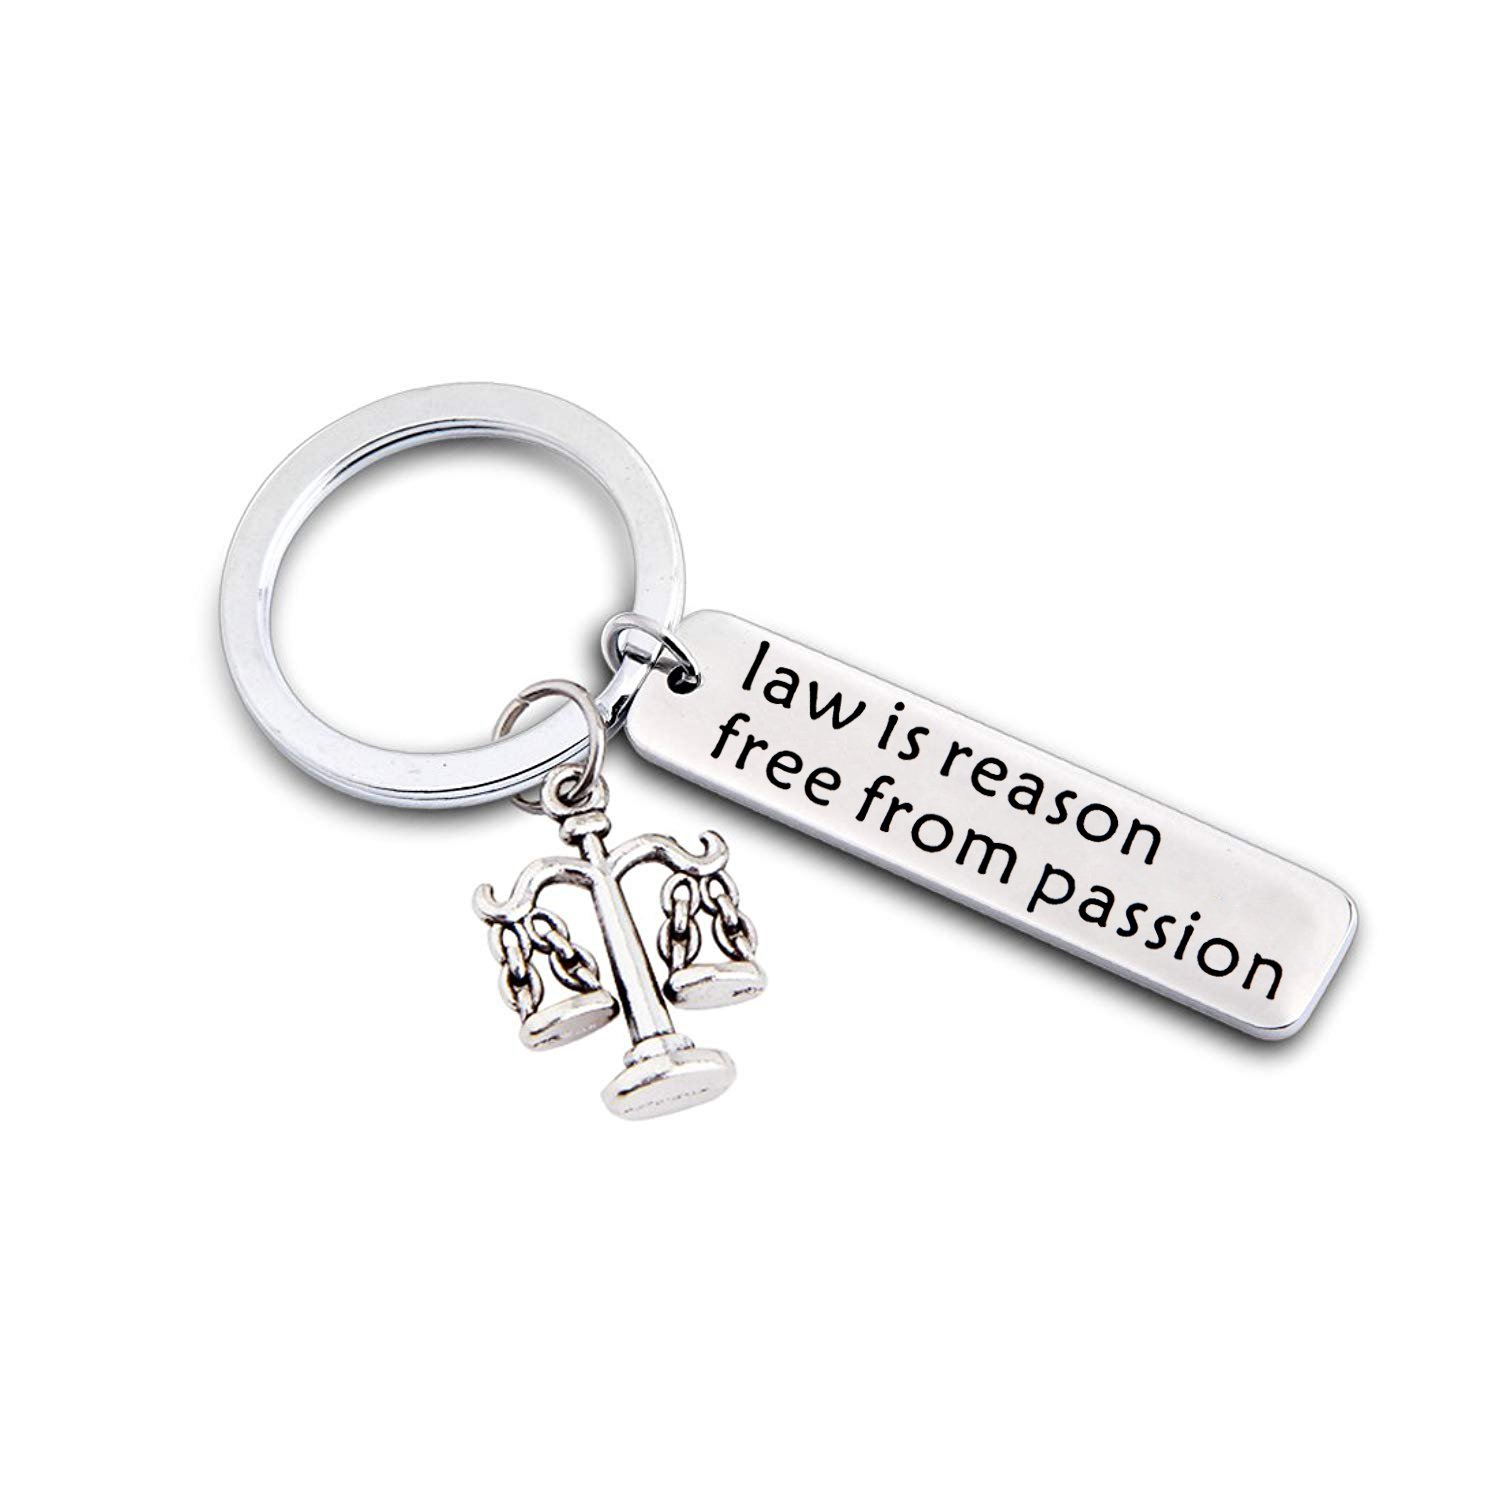 Gzrlyf Lawyer Keychain Attorney Keyring Lawyer Gifts Justice Keychain Law is Reason Free From Passion Keychain Scales Keychain Judge Gift Law Student Gift (lawyer keychain)